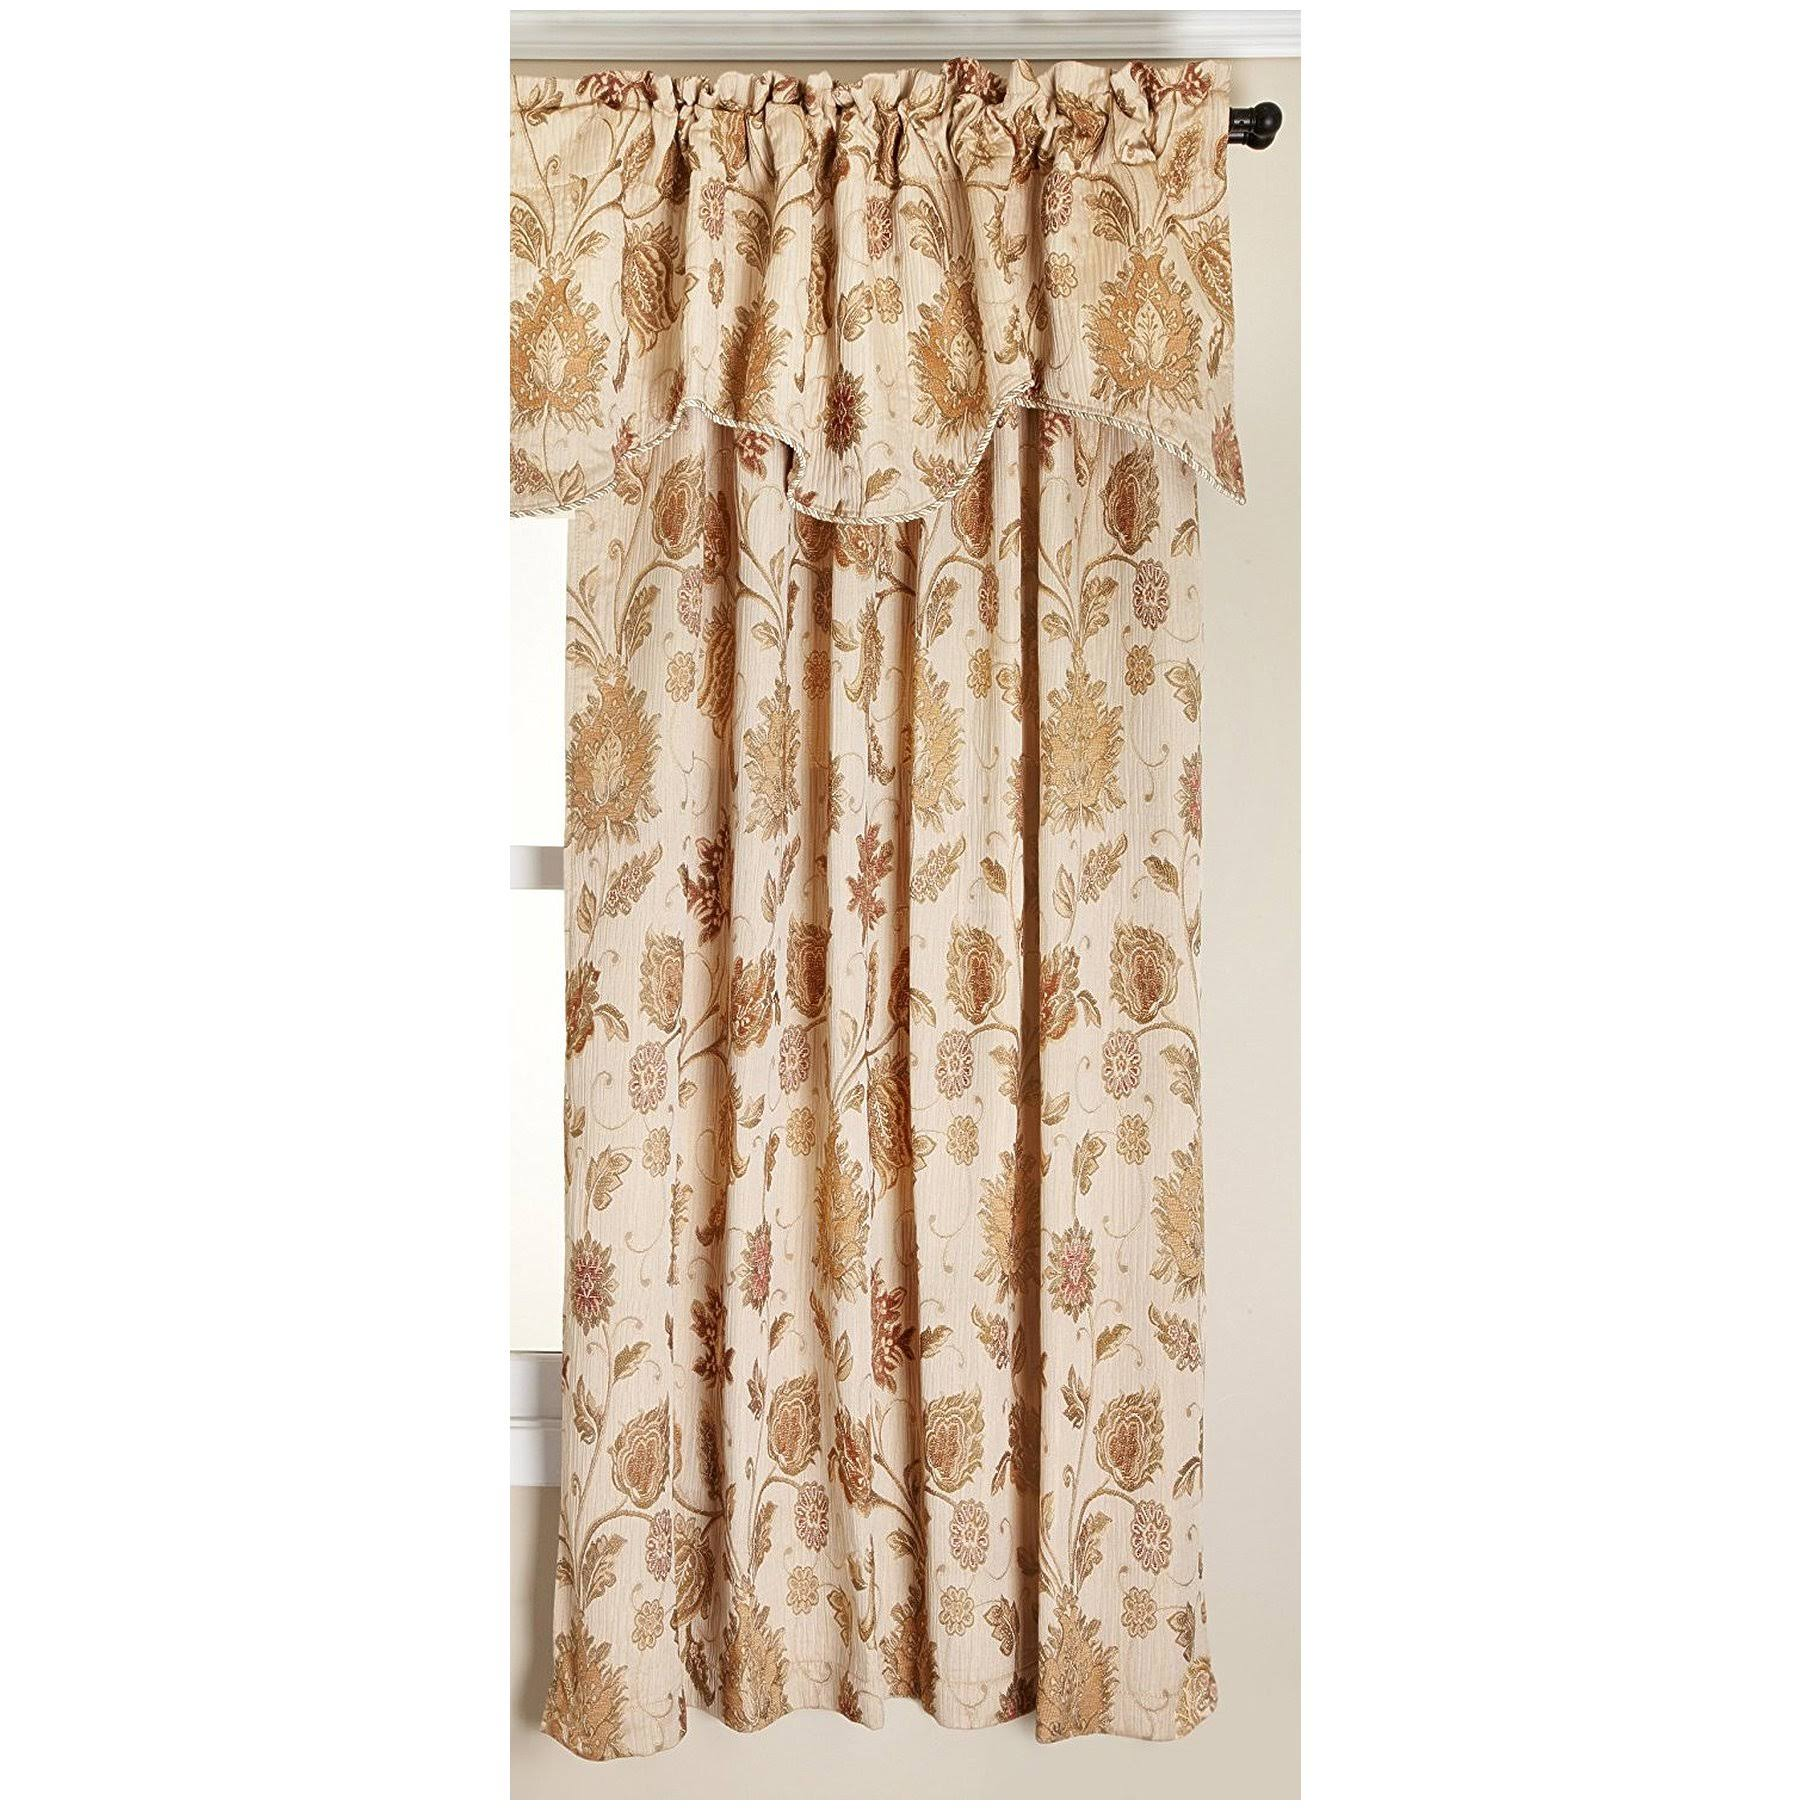 Renaissance Home Fashion Melbourne Chenille Panel, Ivory, 52-Inch by 63-inch